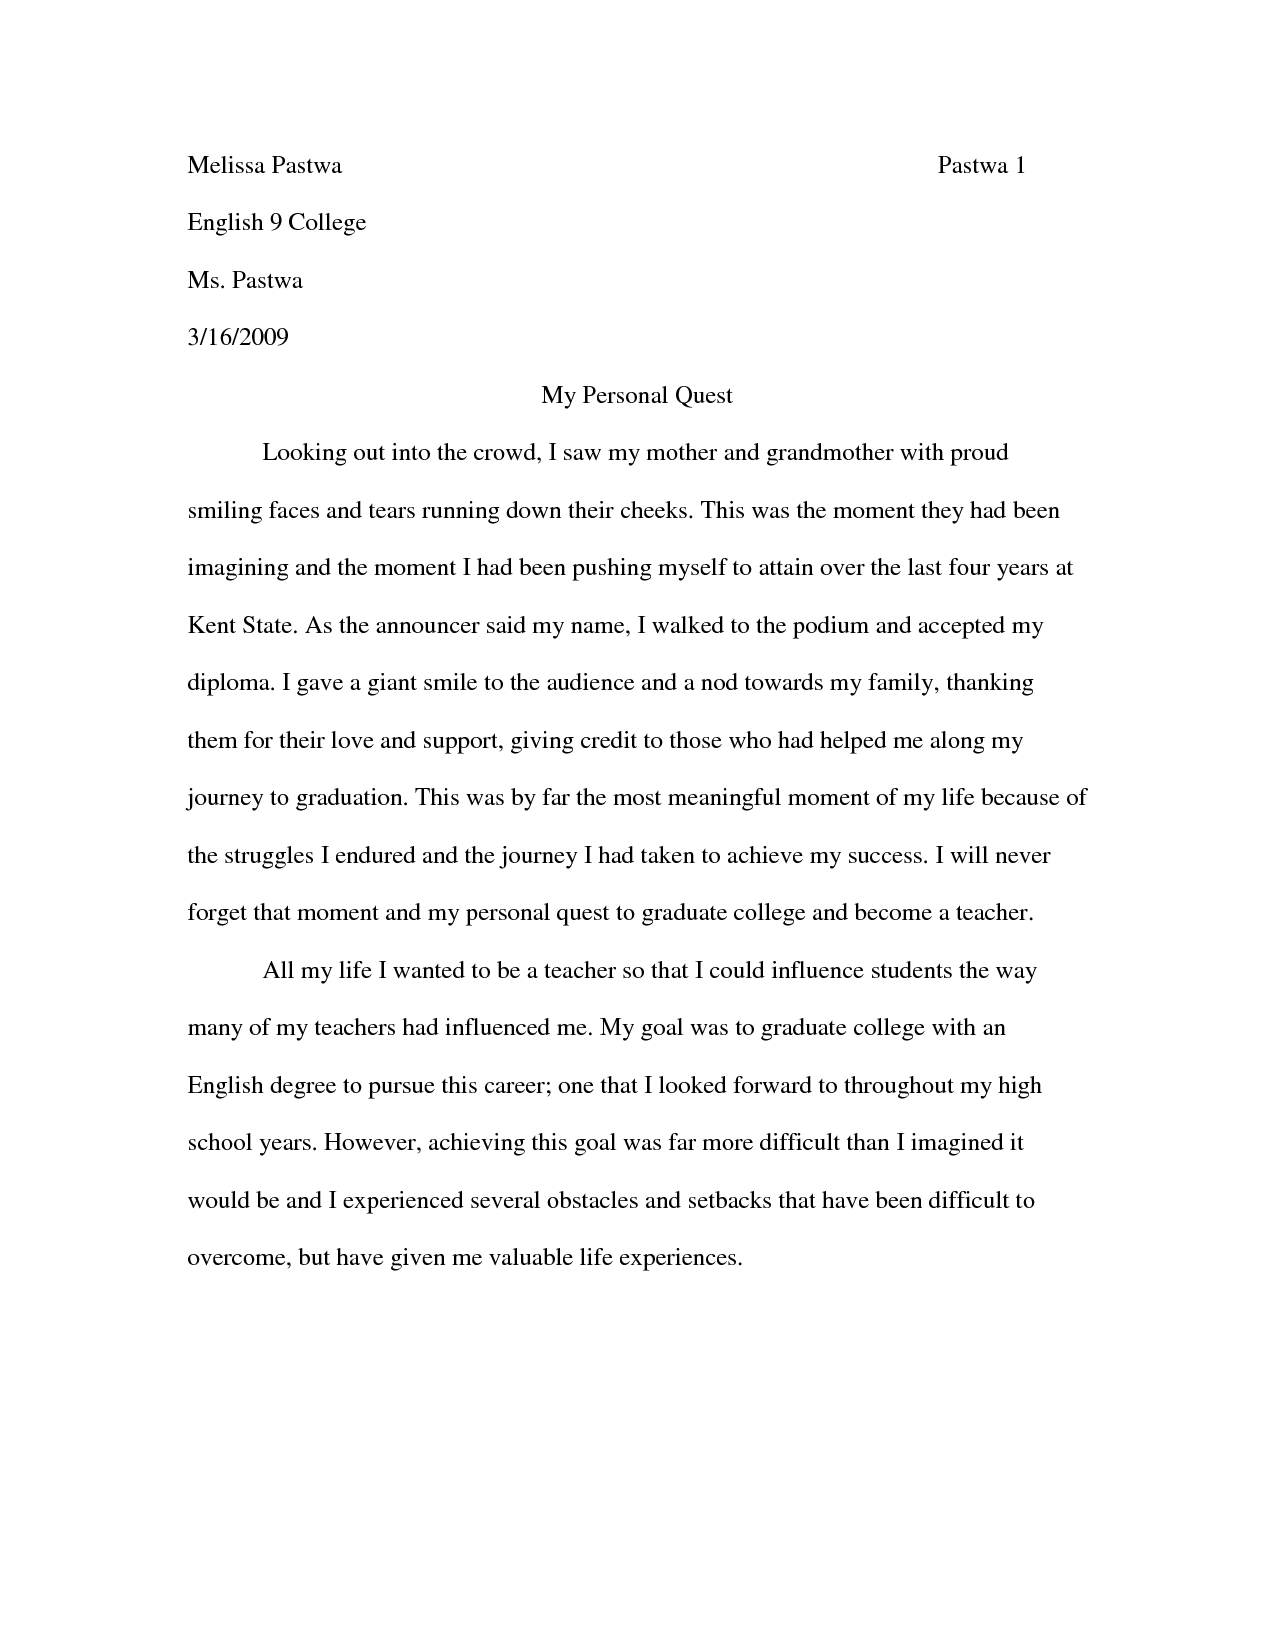 009 Essay Example College Examples Printables Corner Harvard Prompts Essays Ecza Solinf Co Best Ucf Prompt Pomona Mit Uc Texas Amherst Astounding 2017-18 2017 Full